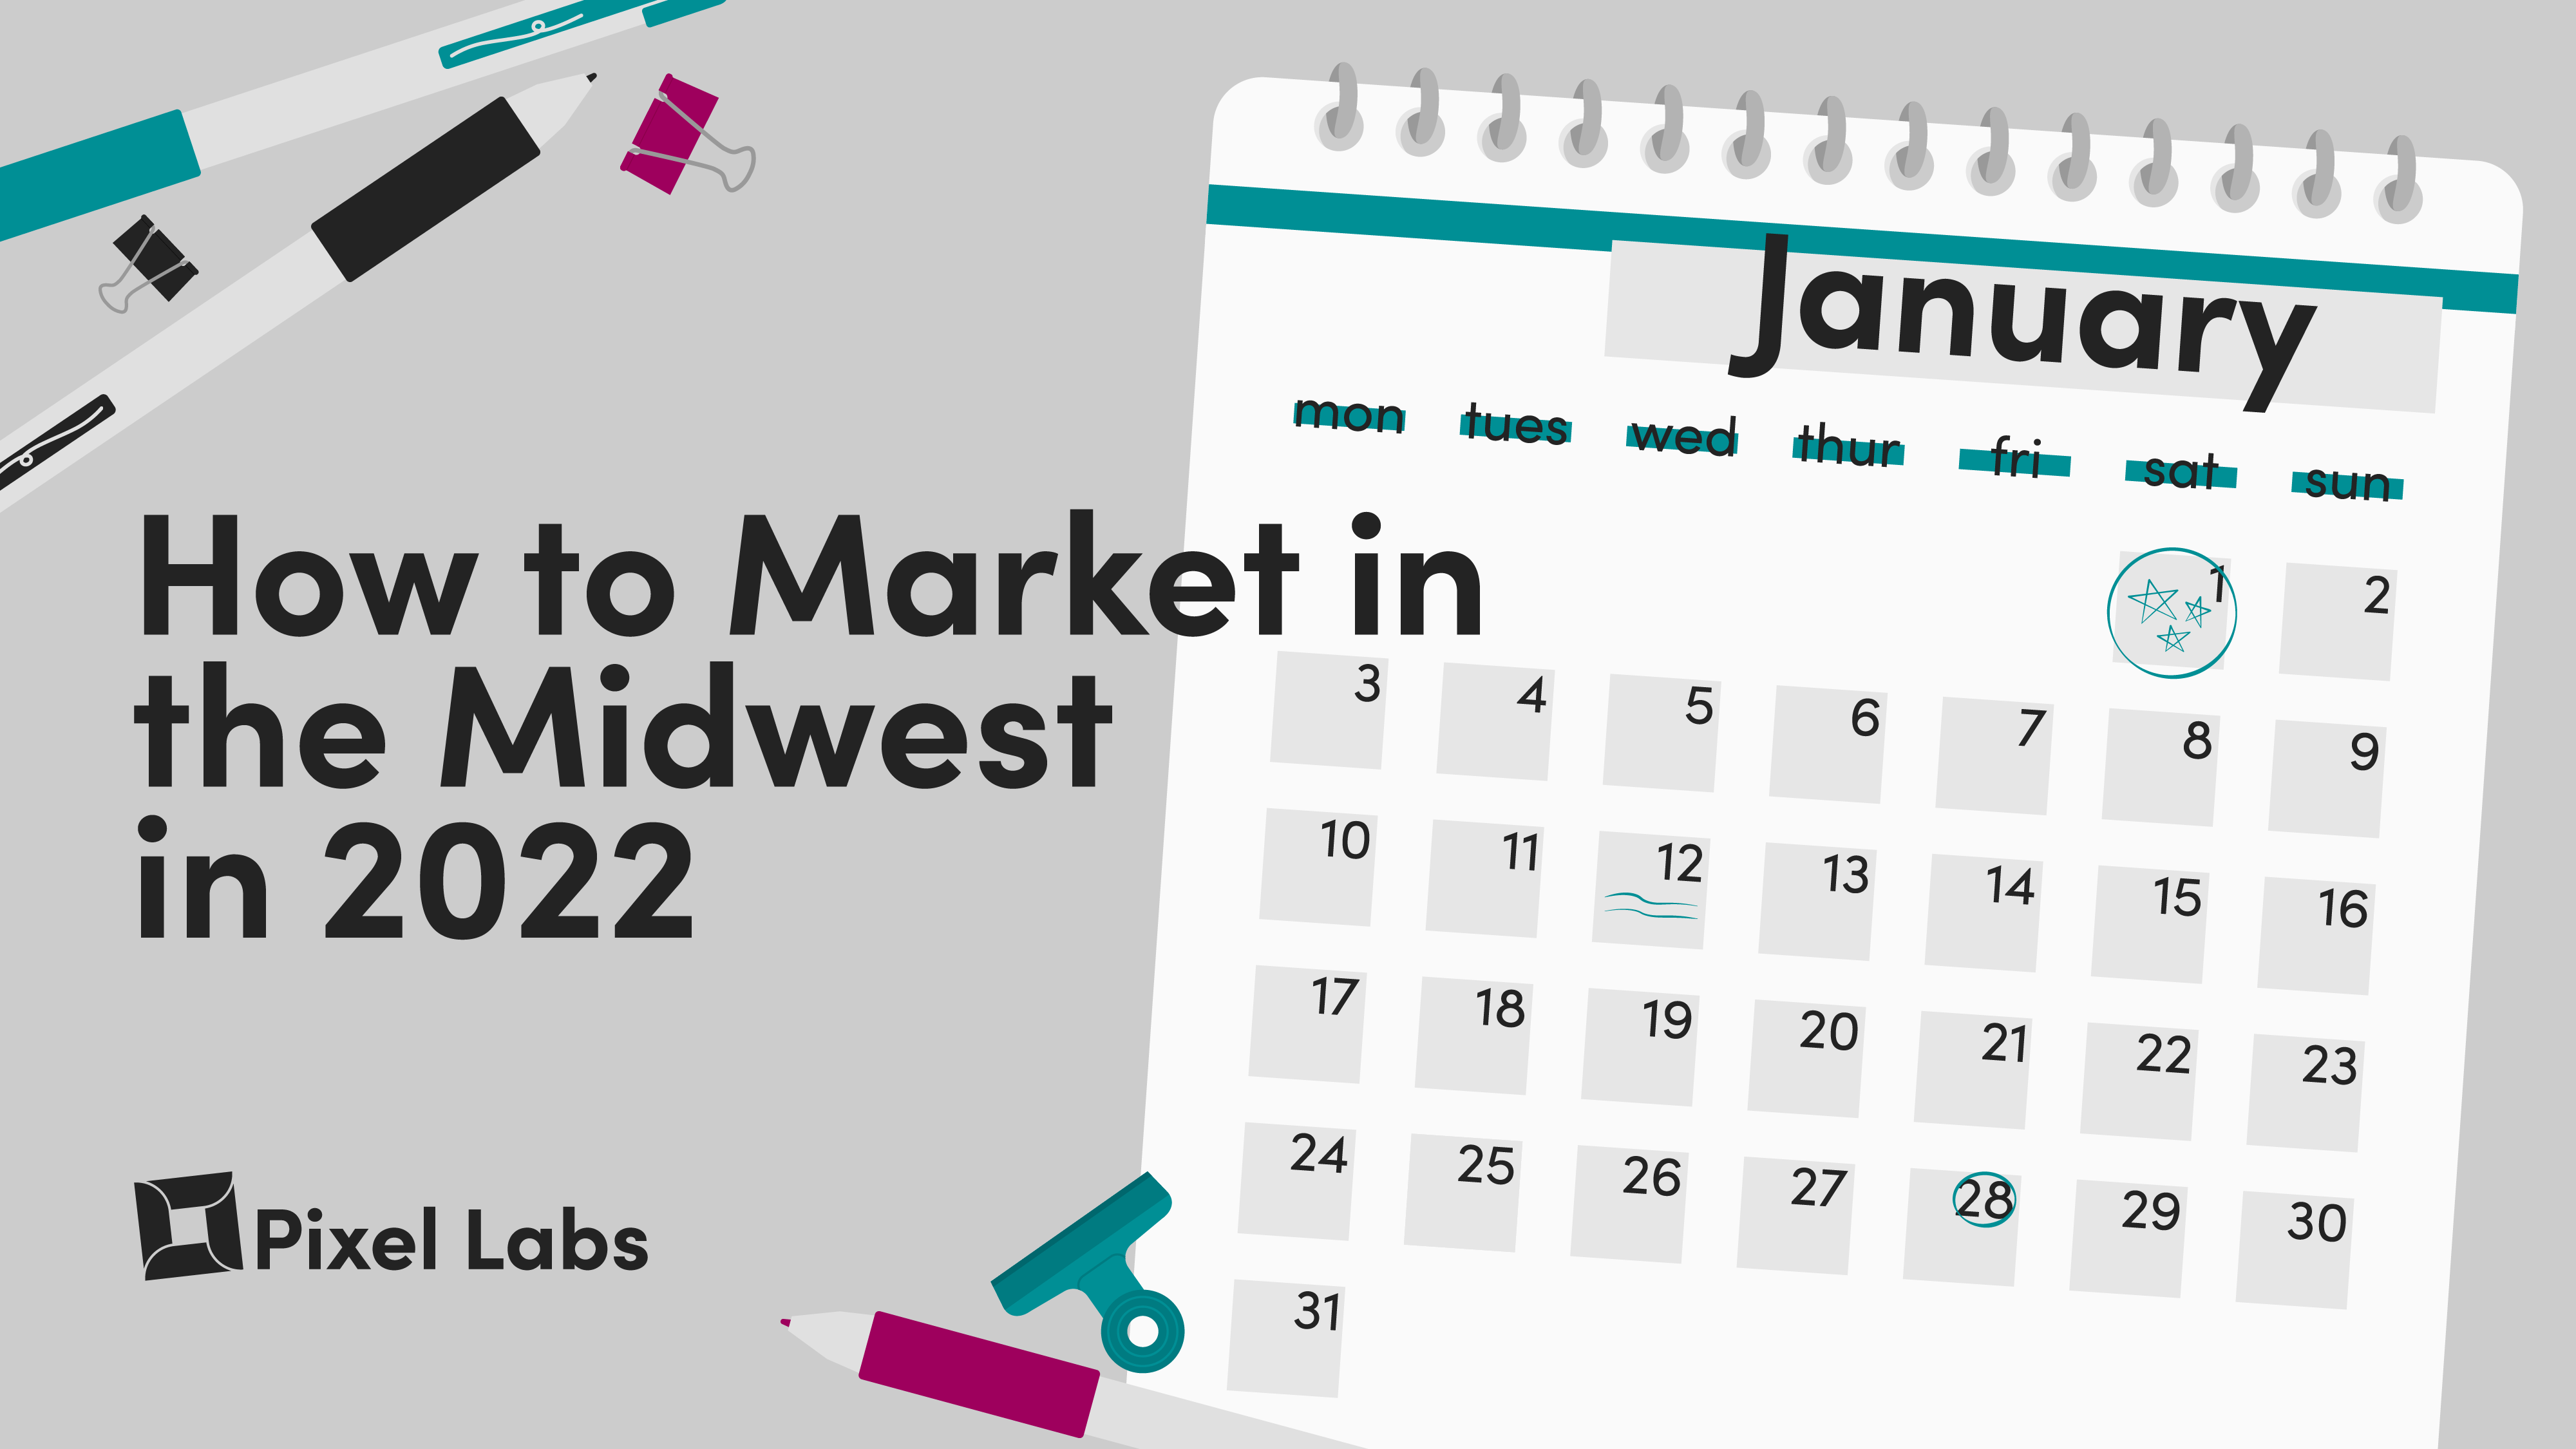 How to Marketing in the Midwest in 2022